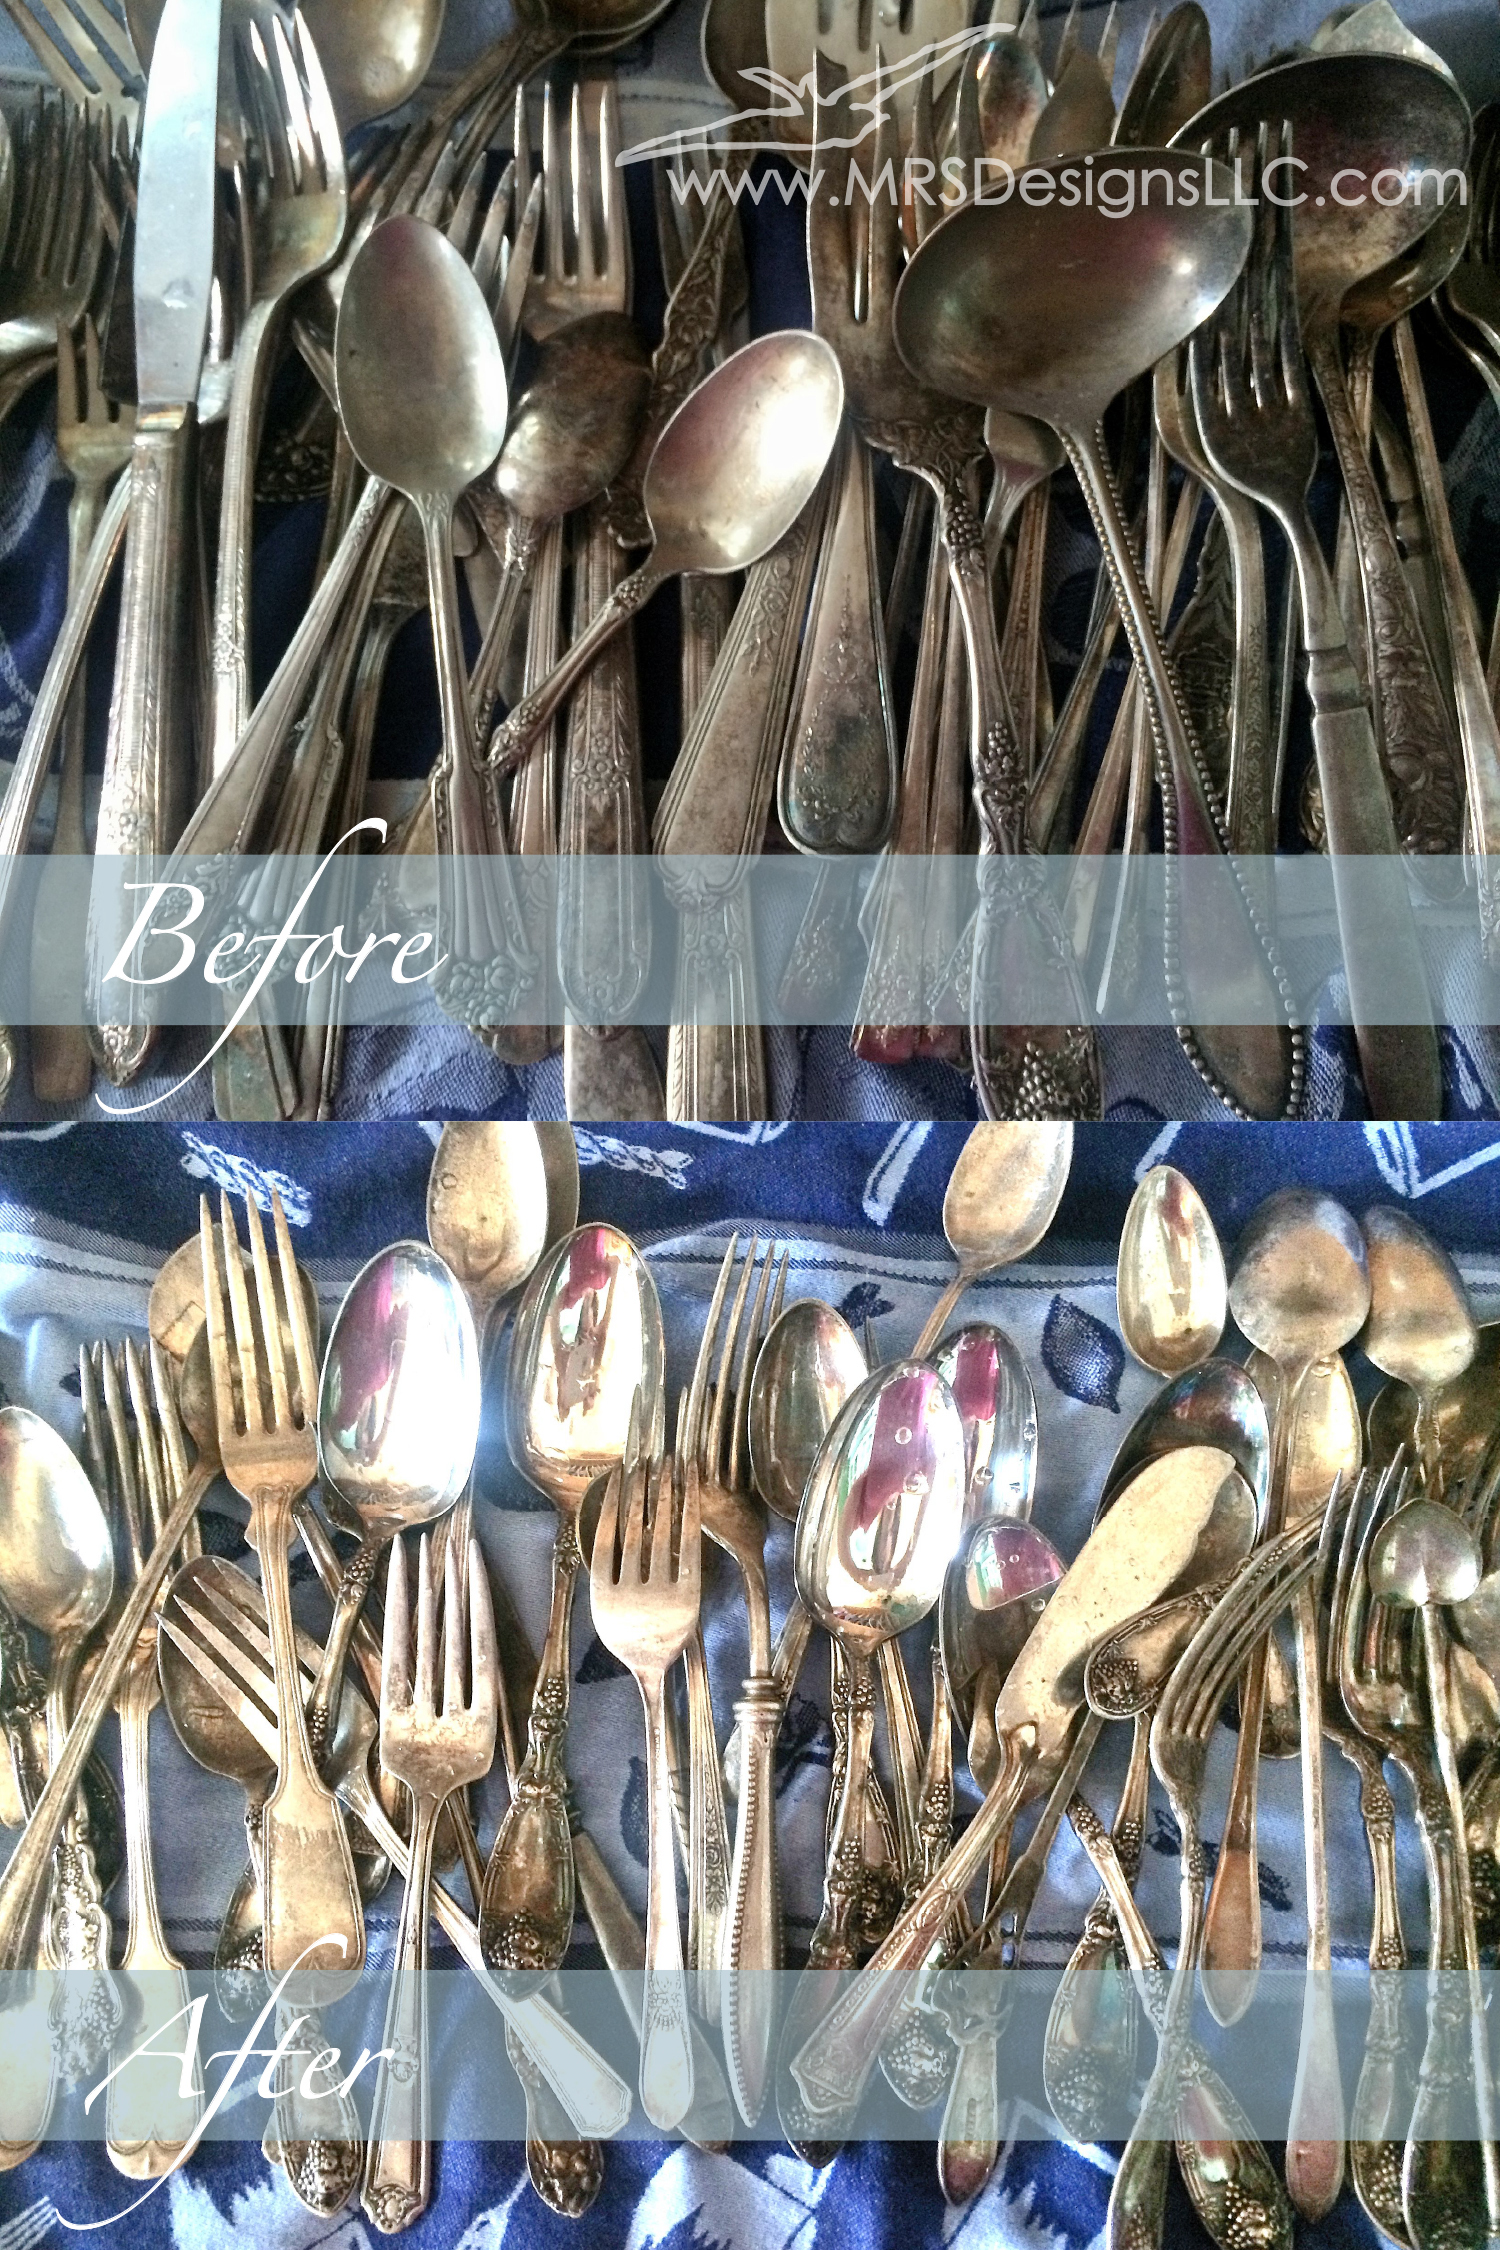 MRS Designs Blog - Vintage Silverware Before and After